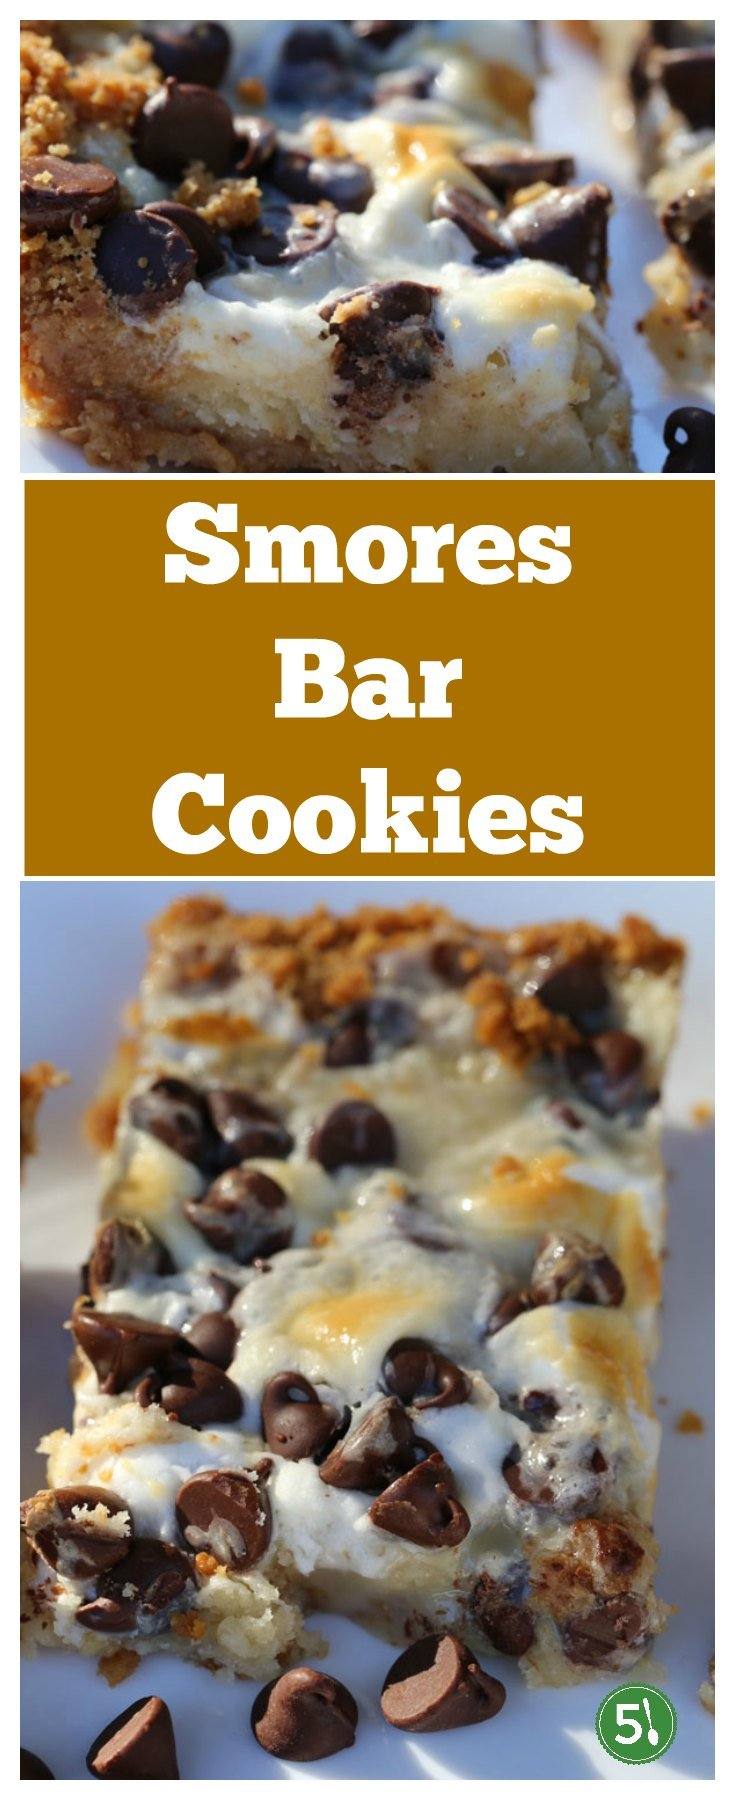 These smores bar cookies with chocolate chips, crushed graham crackers and mini marshmallows are one of our favorite dessert recipes!!